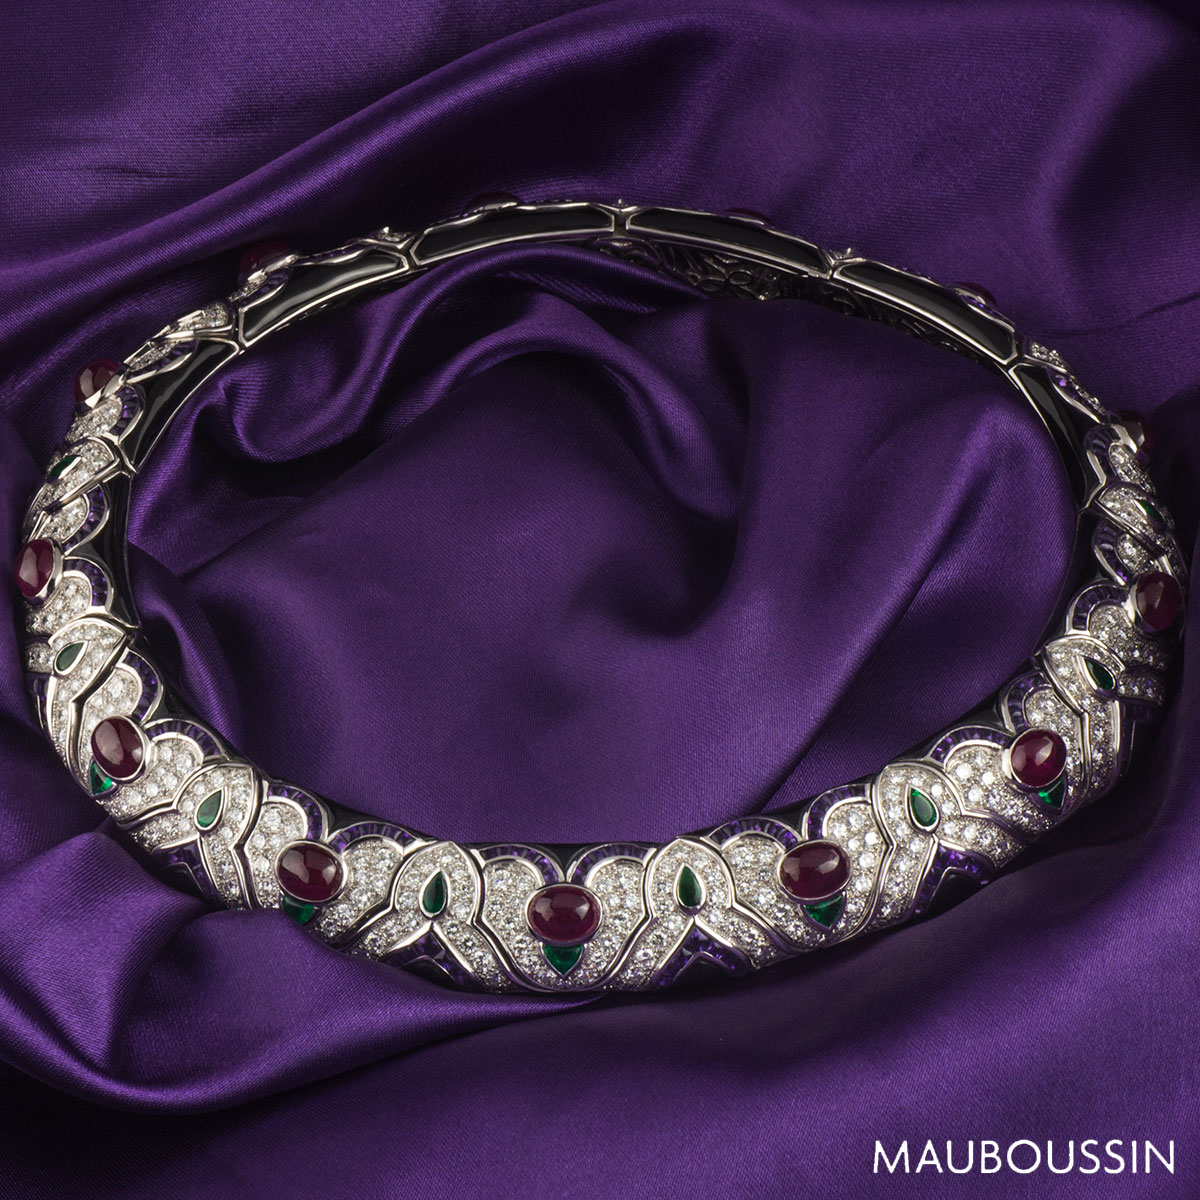 Mauboussin White Gold Multi-Gemstone Necklace